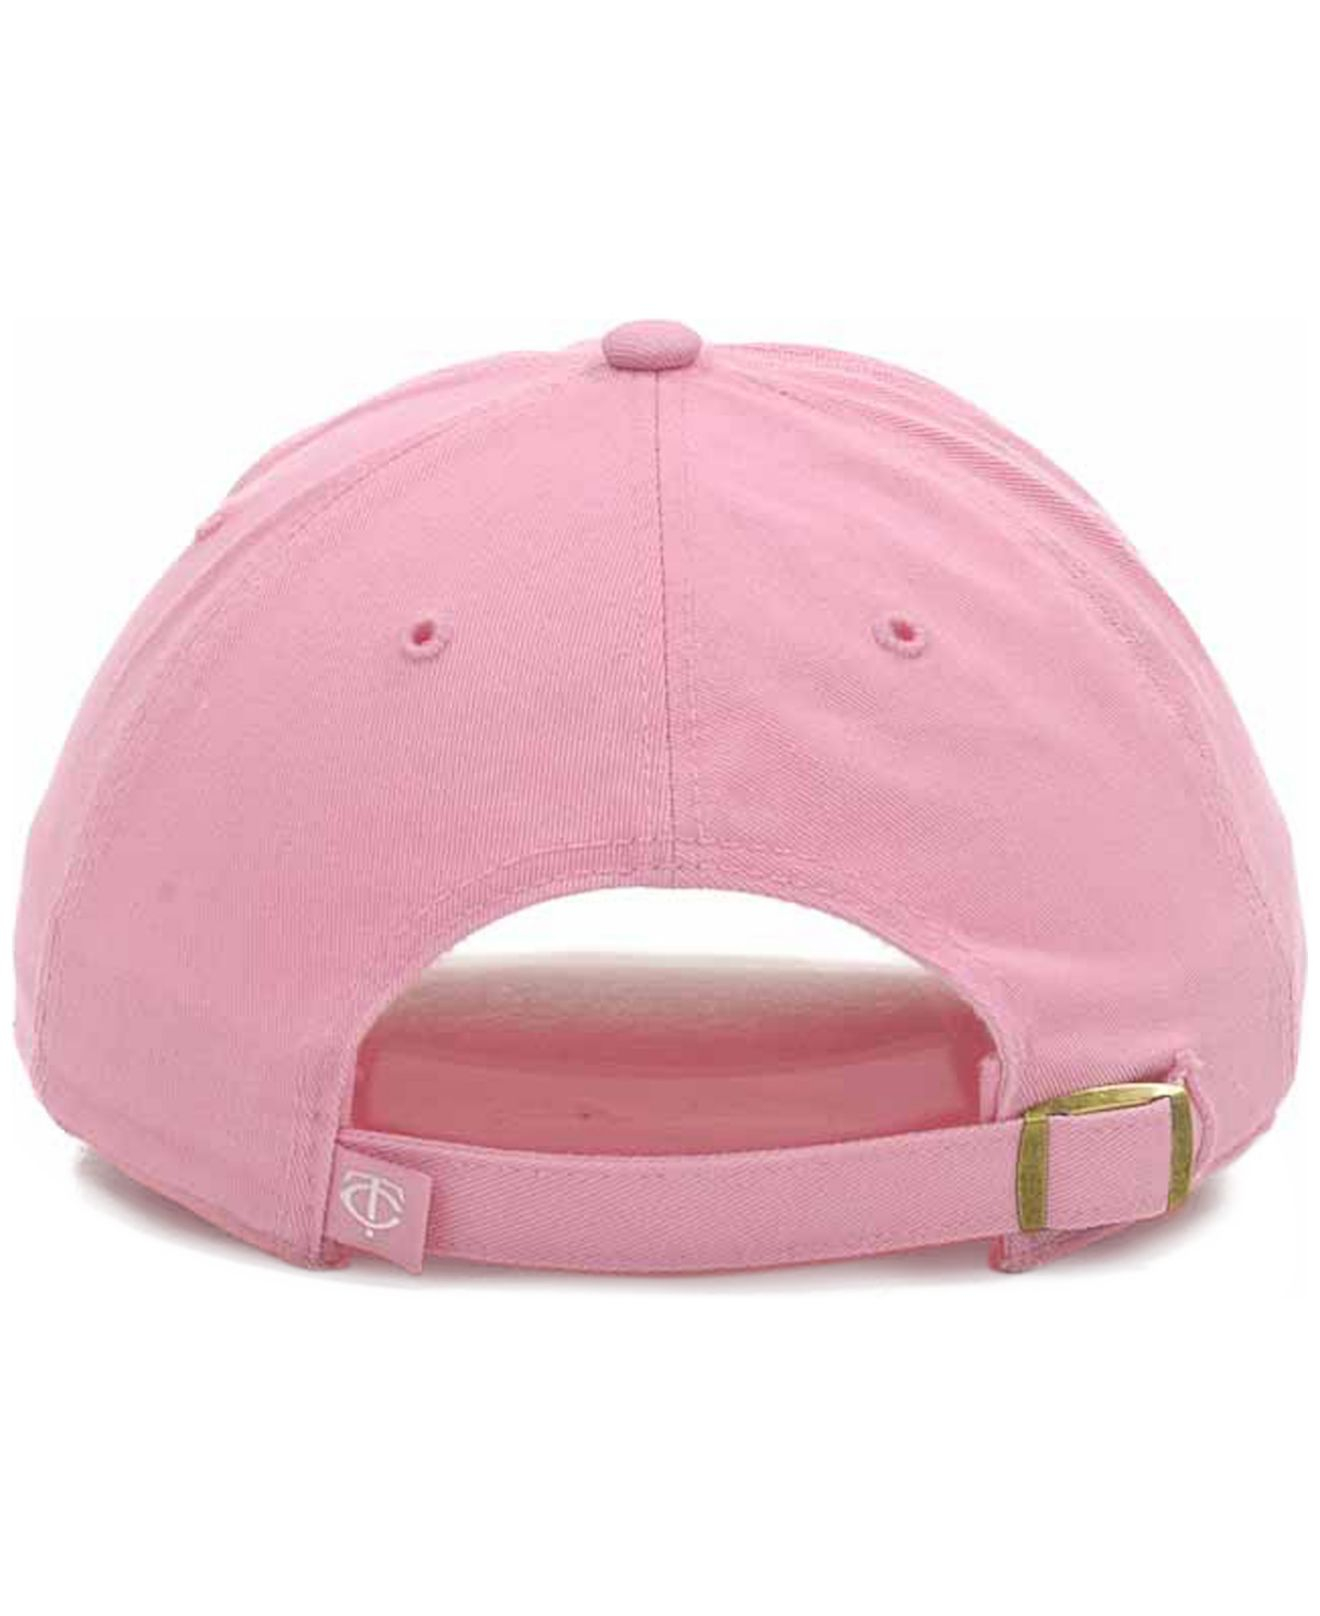 new arrival d0076 31d30 ... hot lyst 47 brand minnesota twins clean up hat in pink for men ff2e1  28056